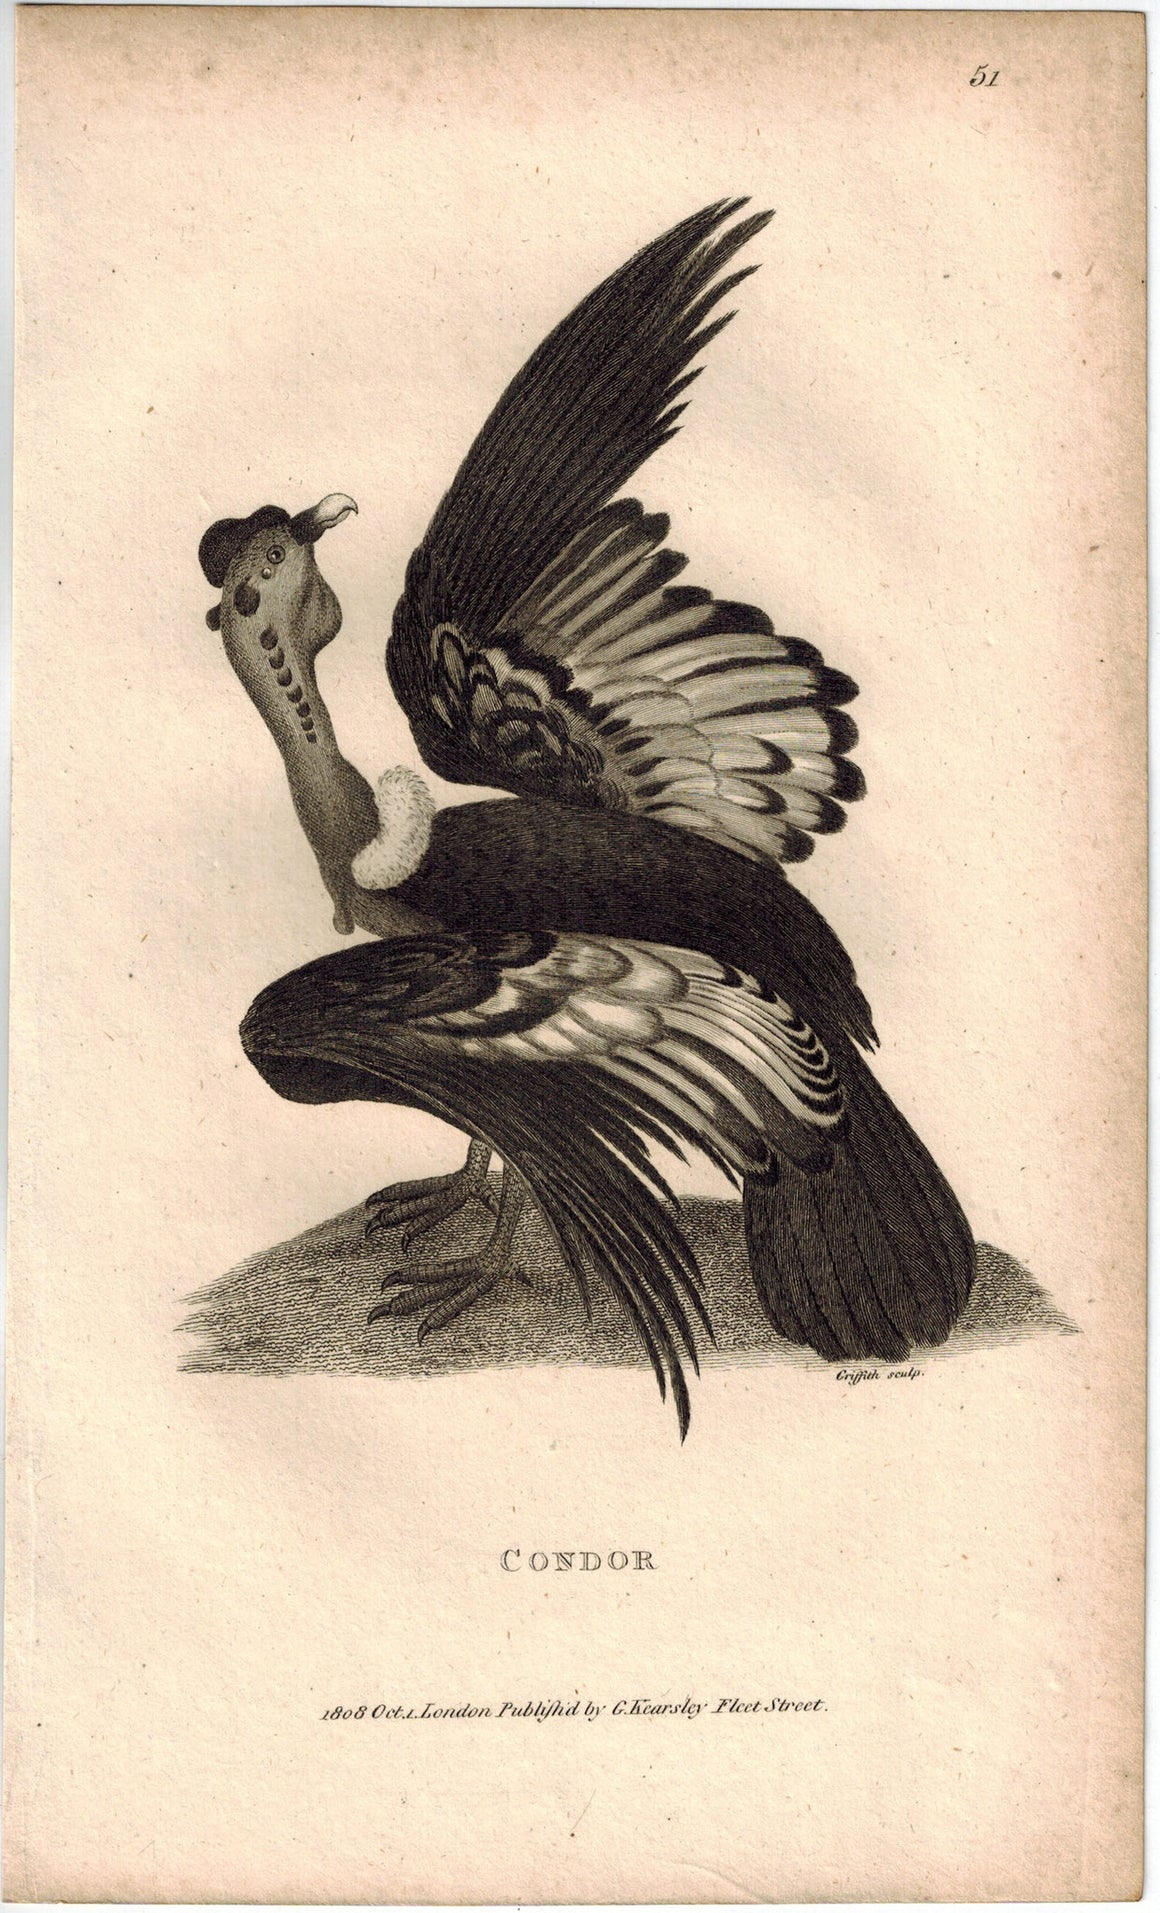 Condor Antique Print 1809 George Shaw Original Engraving